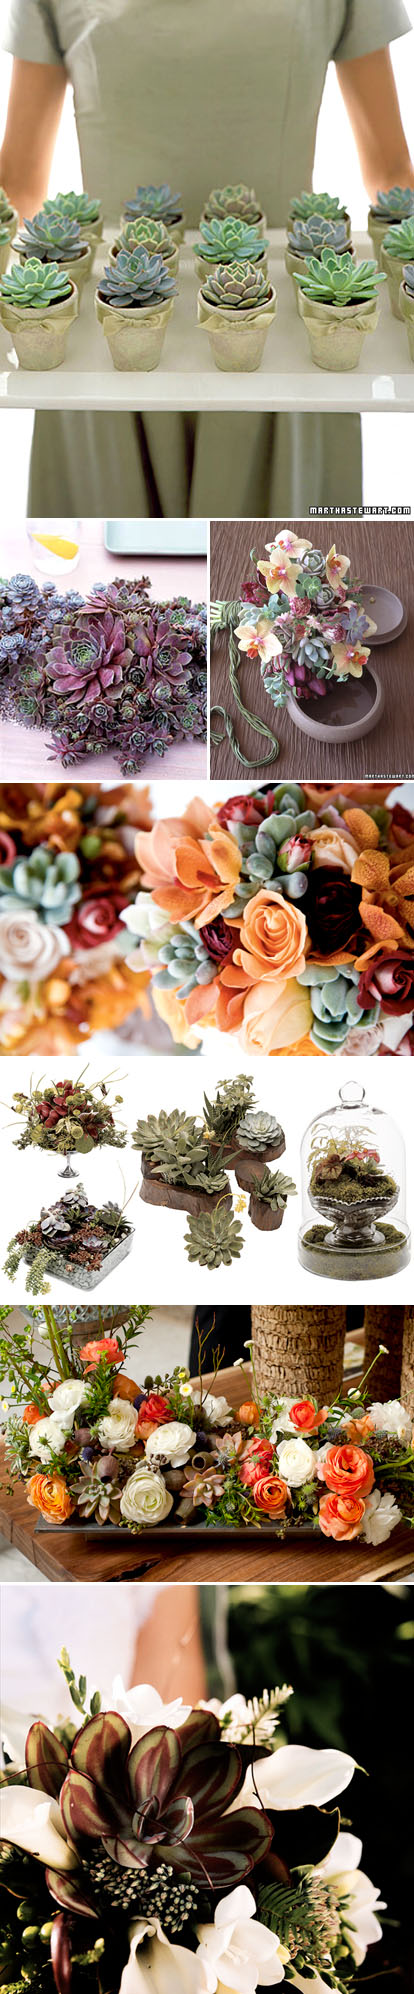 spring wedding bouquets, centerpieces, boutonnieres and floral decor with succulents